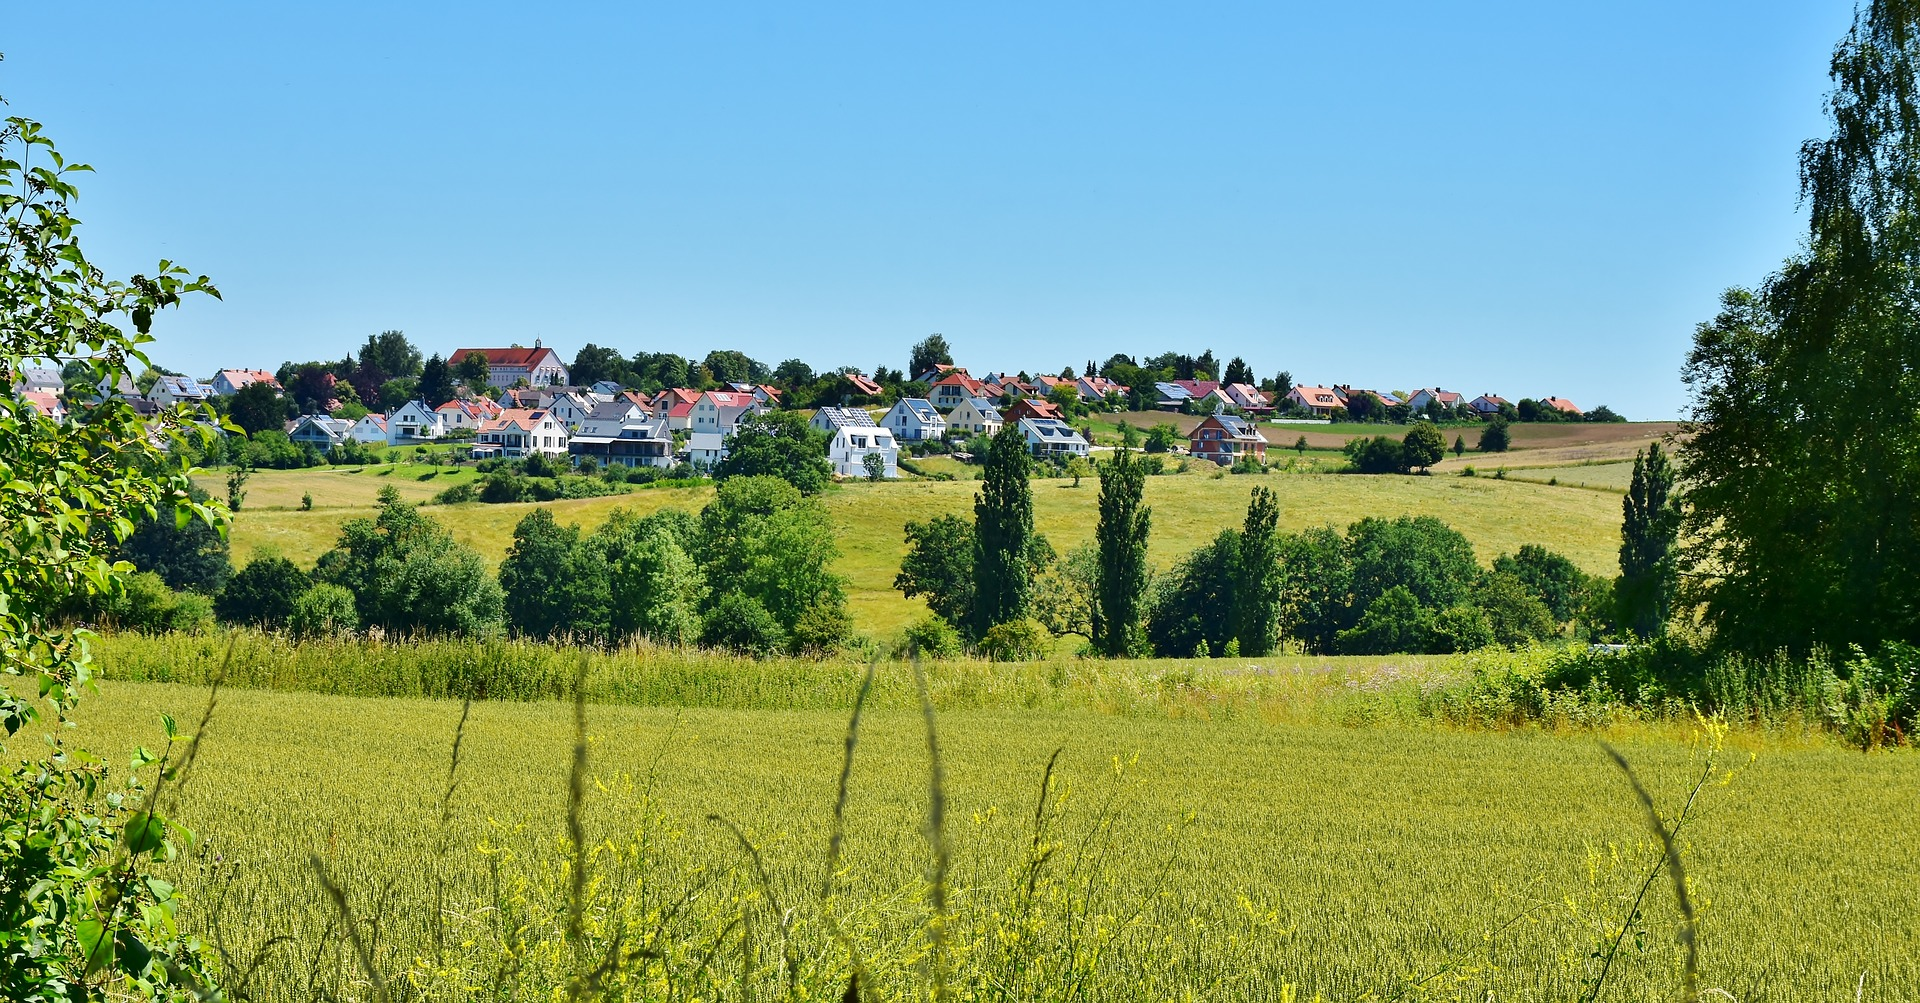 A town composed of houses located in the distance beyond a green grass meadow with trees in the middle.